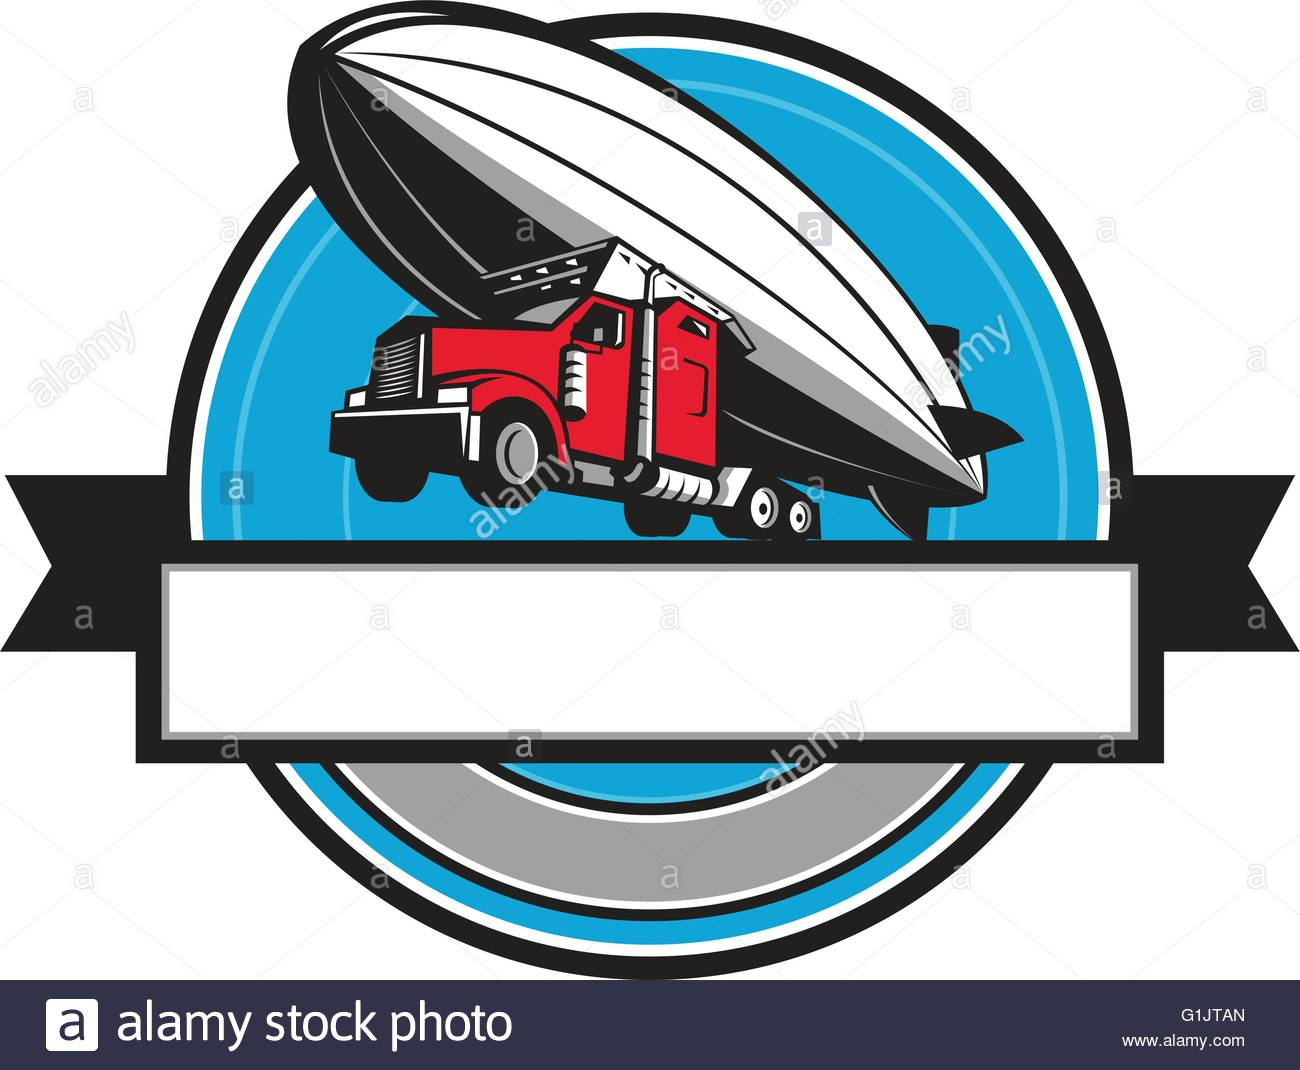 1300x1070 Illustration Of A Half Semi Truck Tractor Trailer And Zeppelin